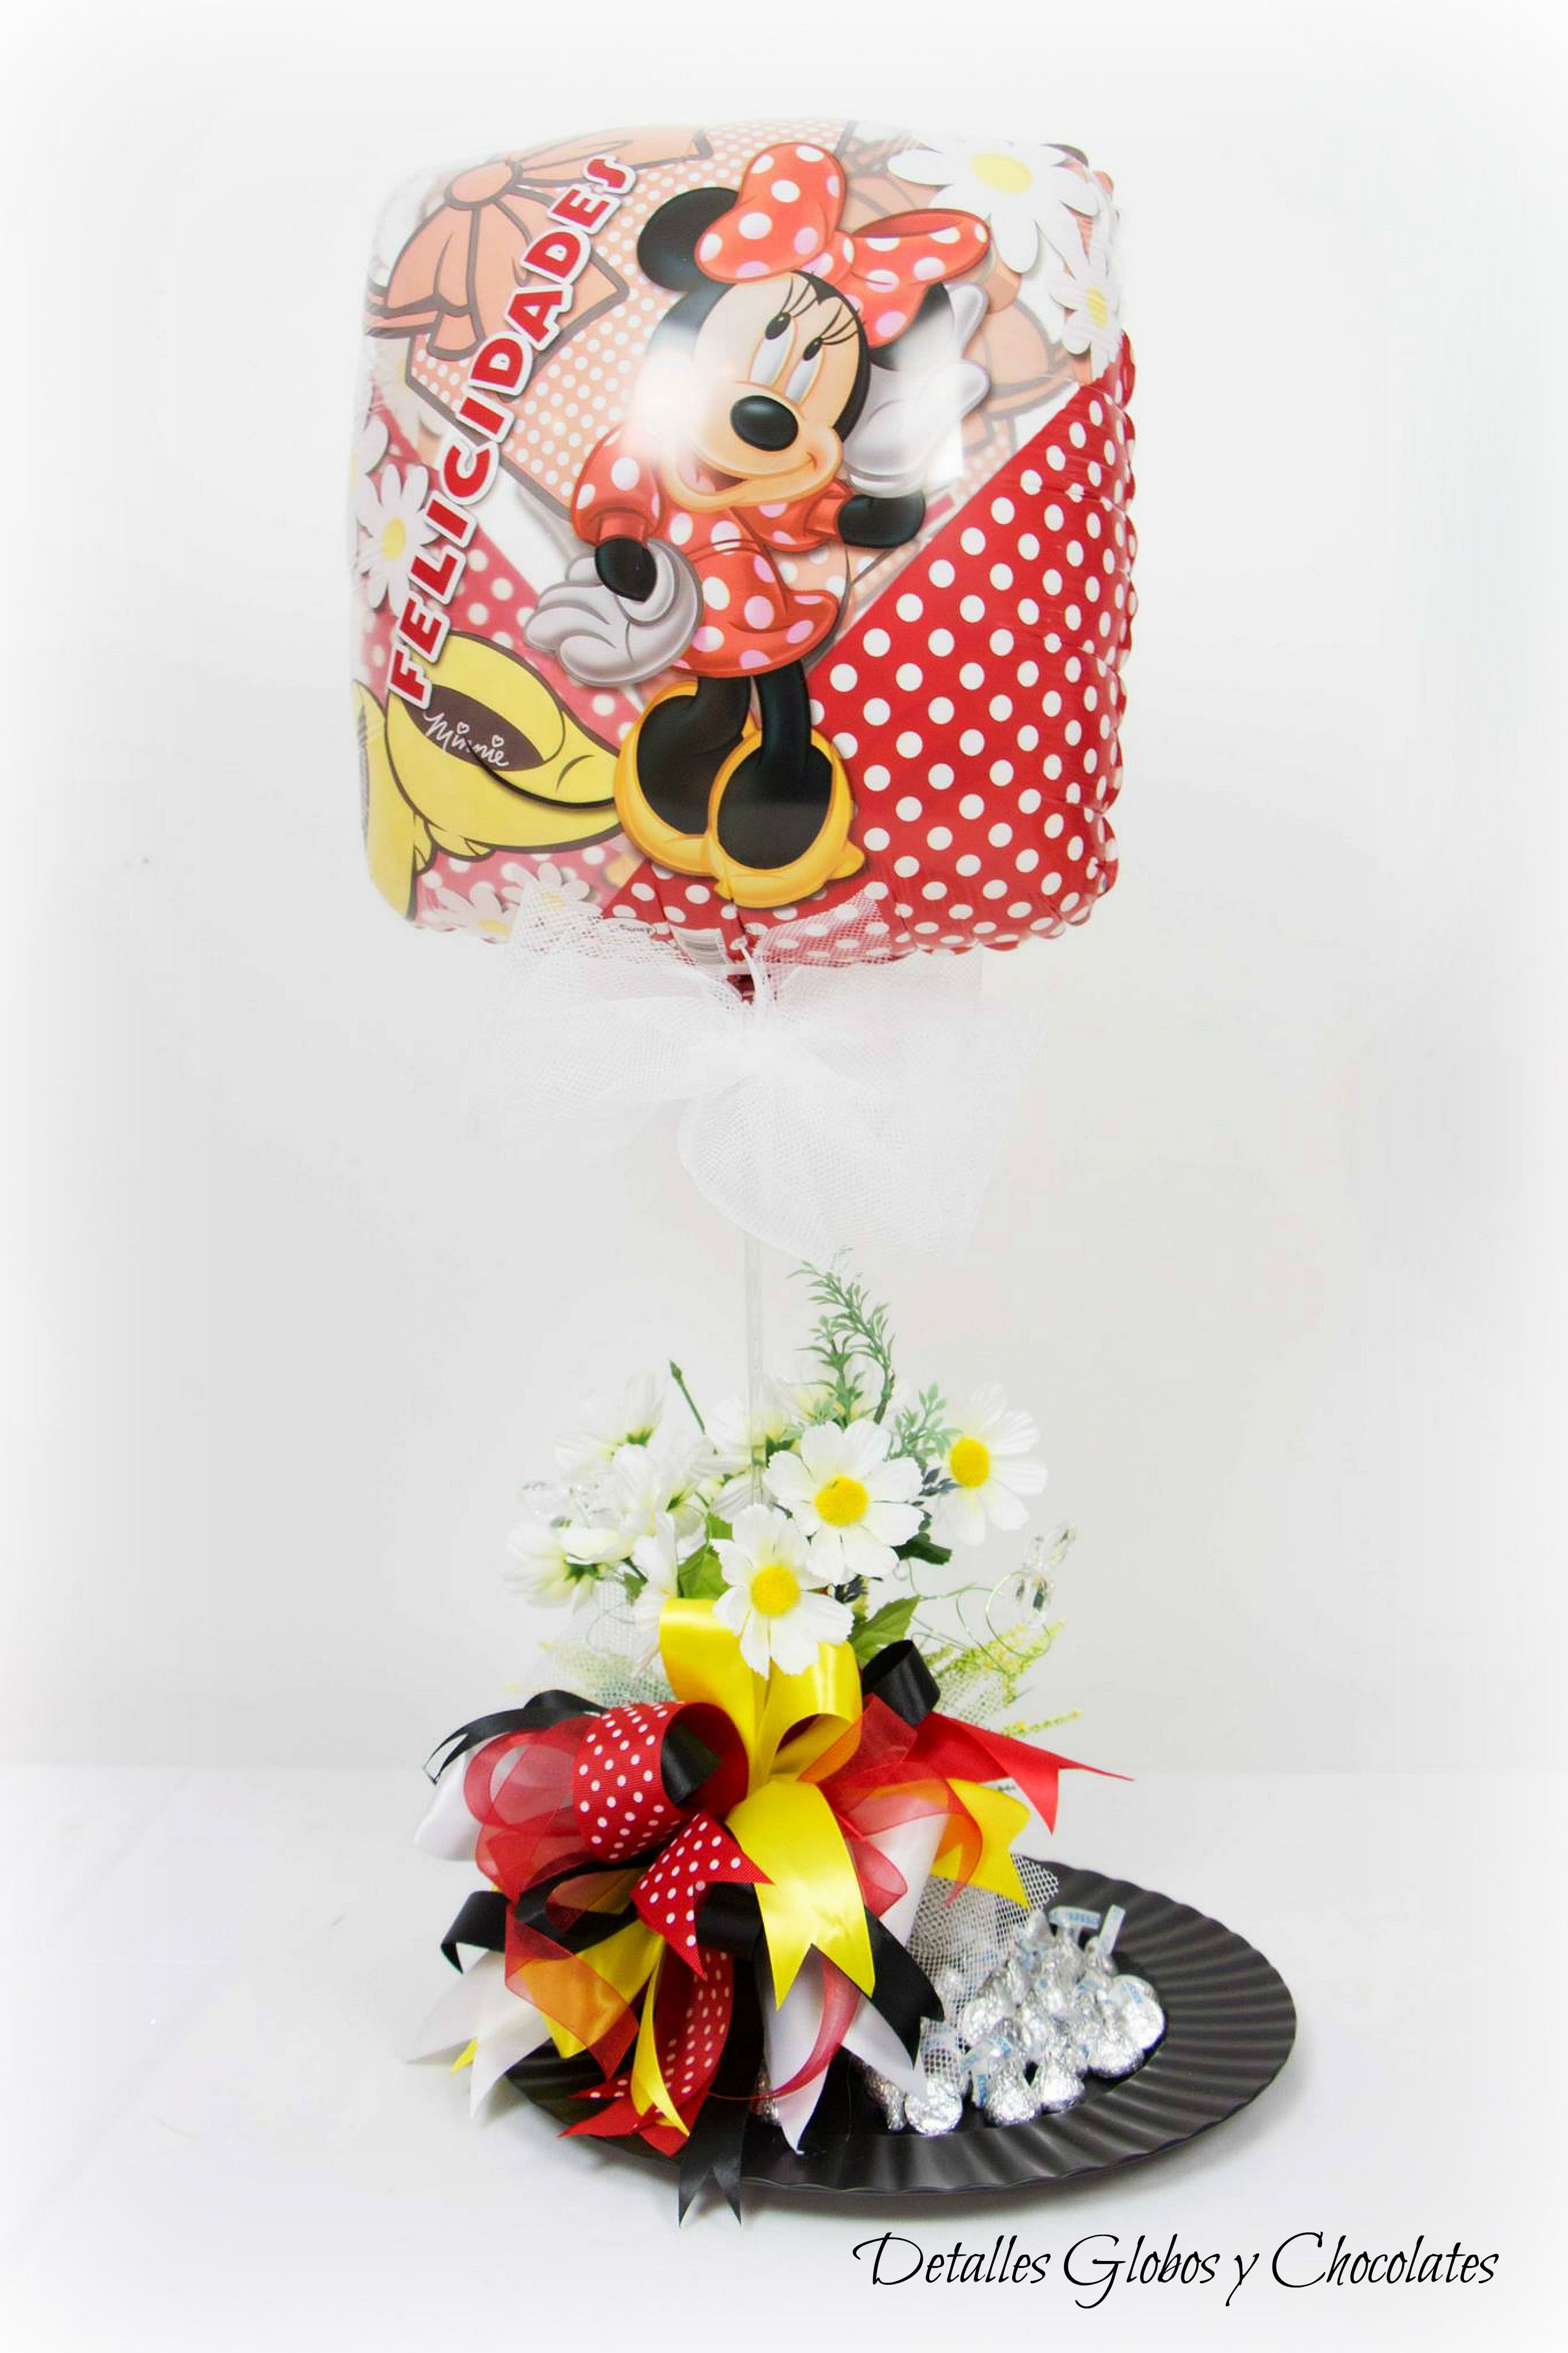 Chocolate bouquet on pinterest candy flowers bouquet of chocolate - Detalles Globos Y Chocolates Chocolate Bouquetcandy